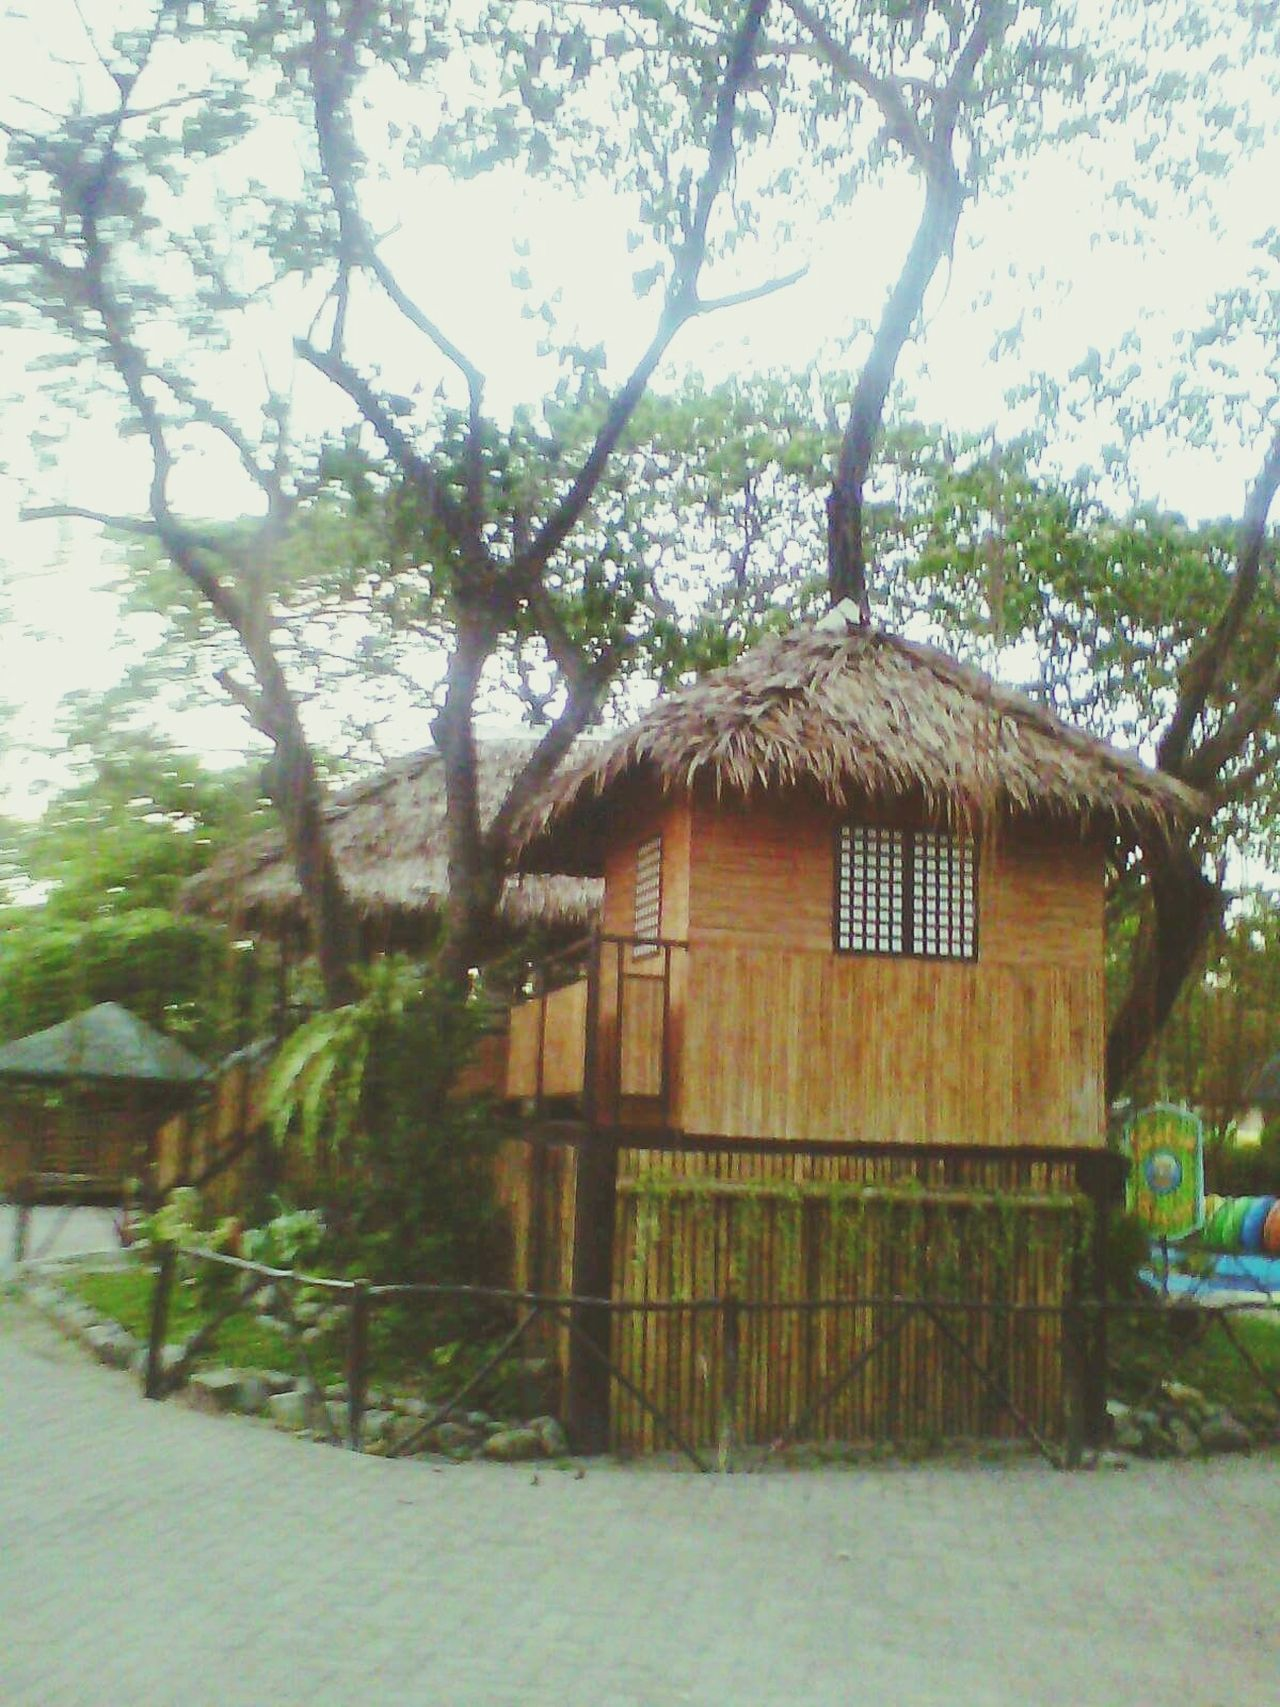 Tree Architecture Nature House Built Structure Building Exterior No People Outdoors Day Sky